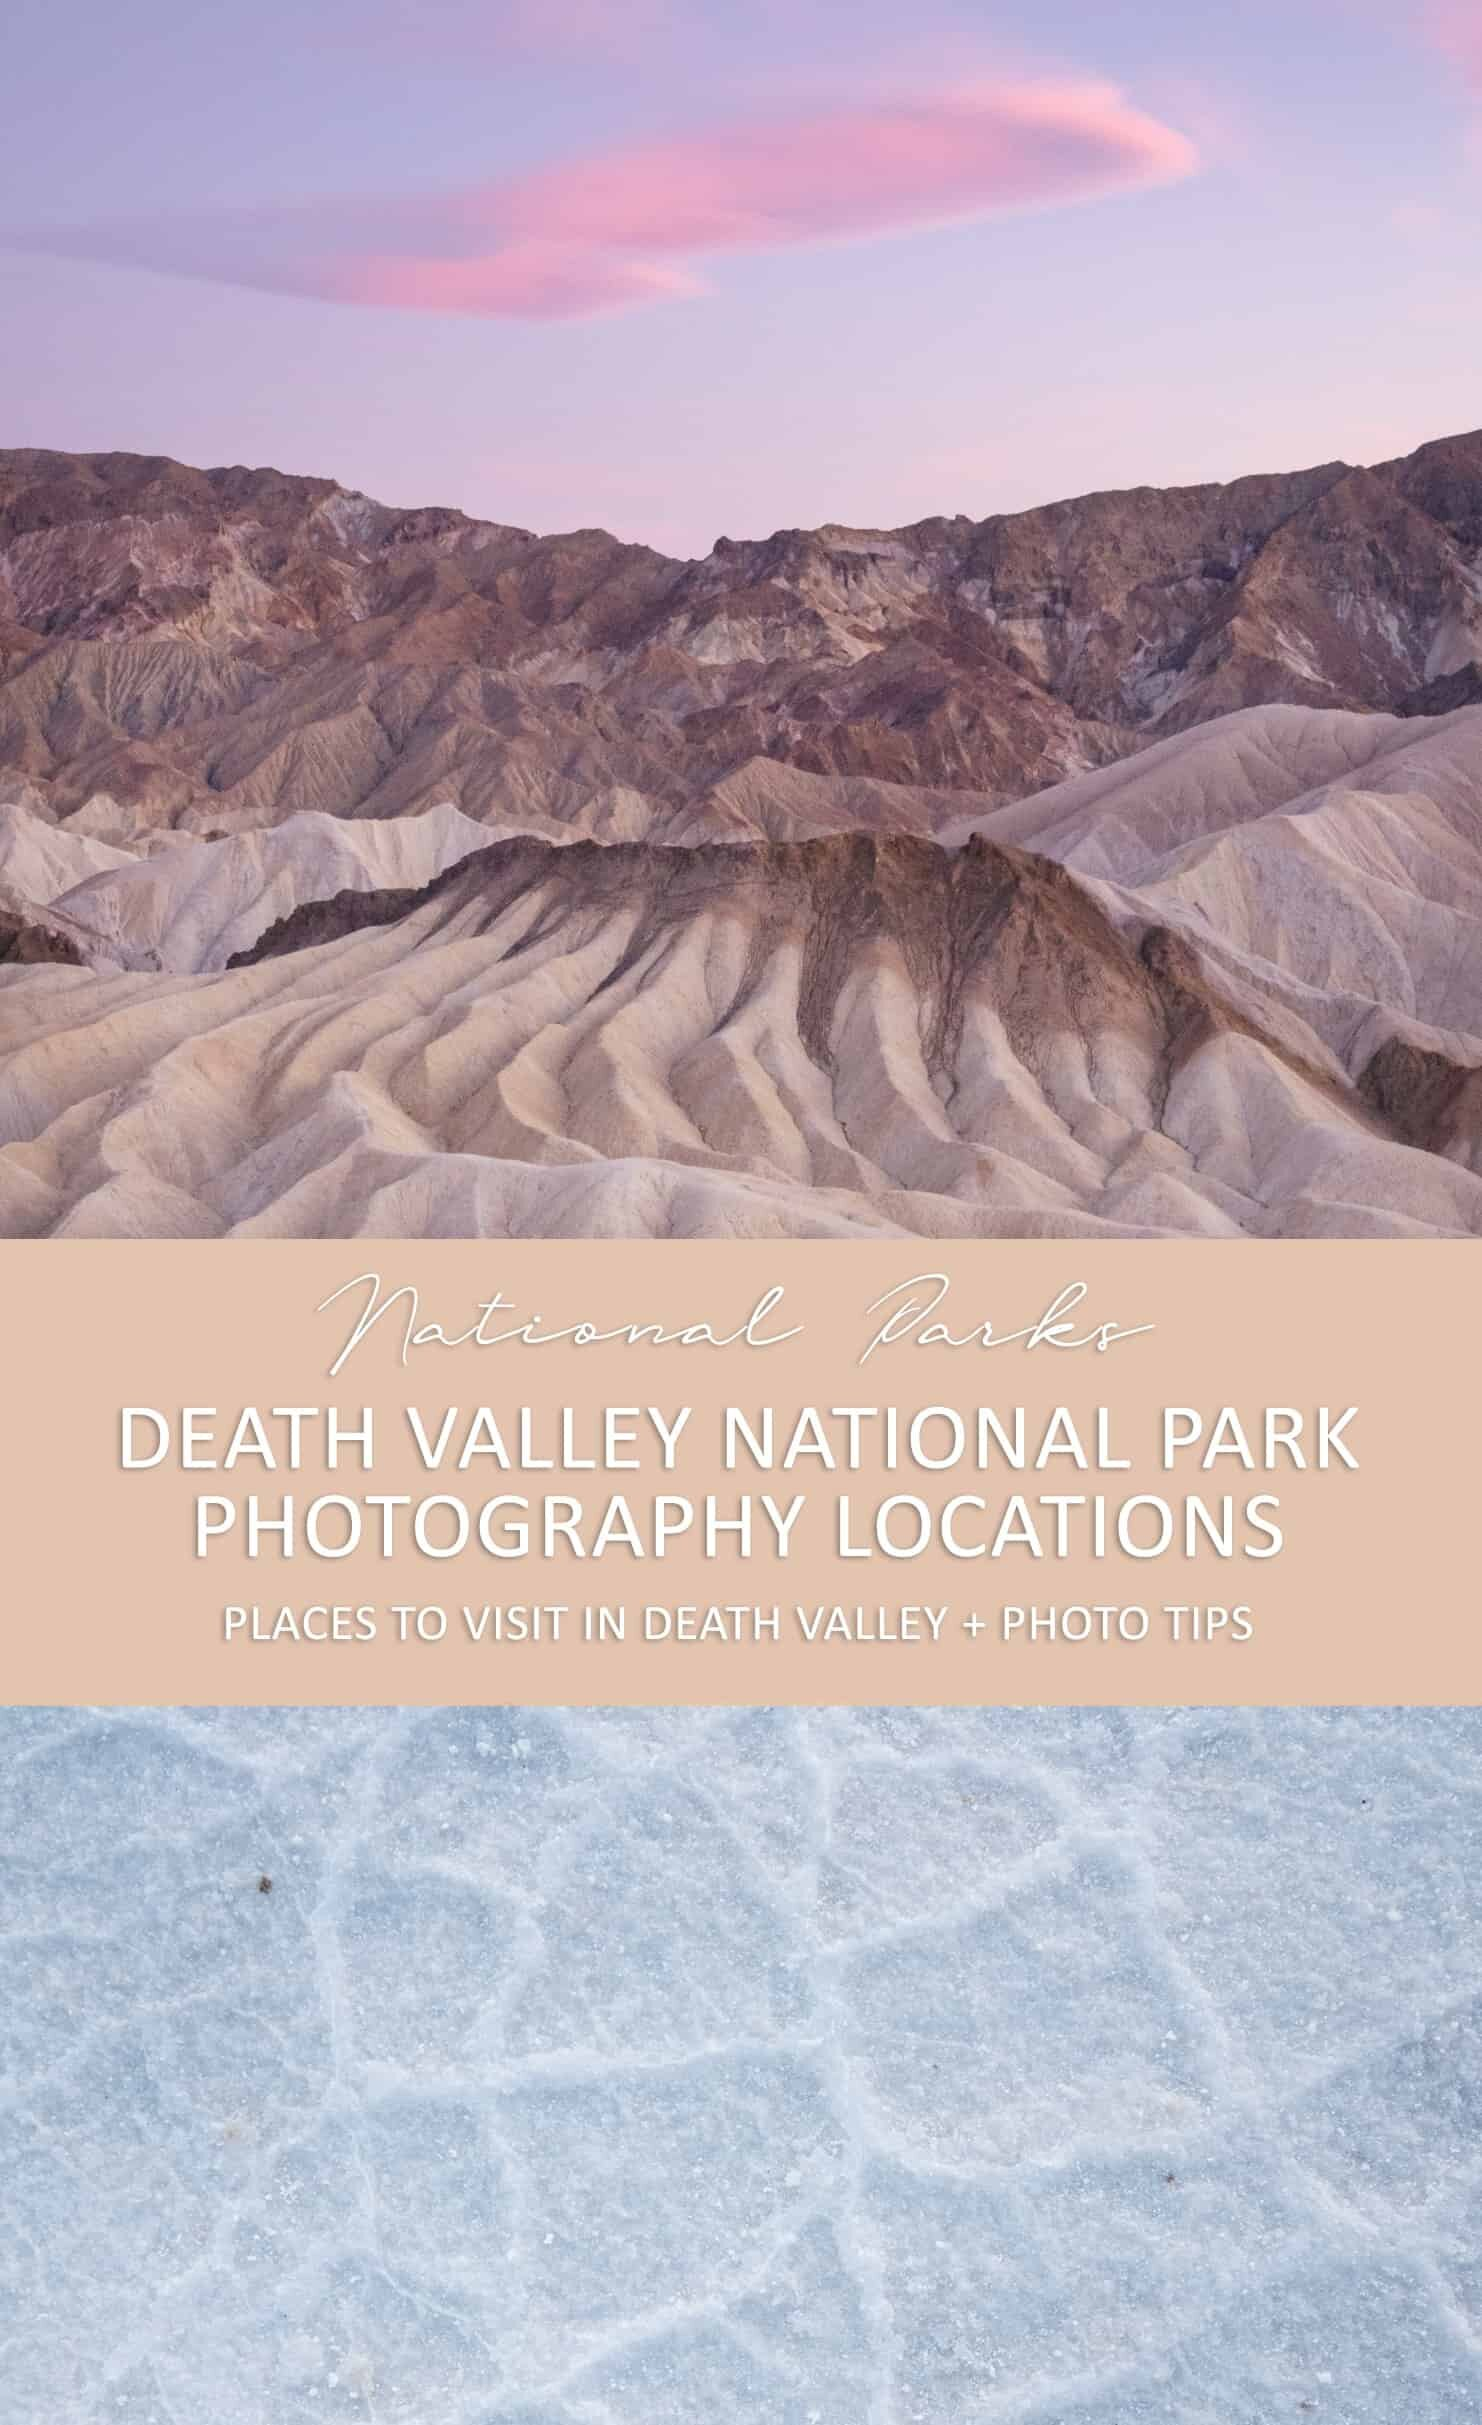 Death Valley National Park Photography Locations and Things to Do in Death Valley